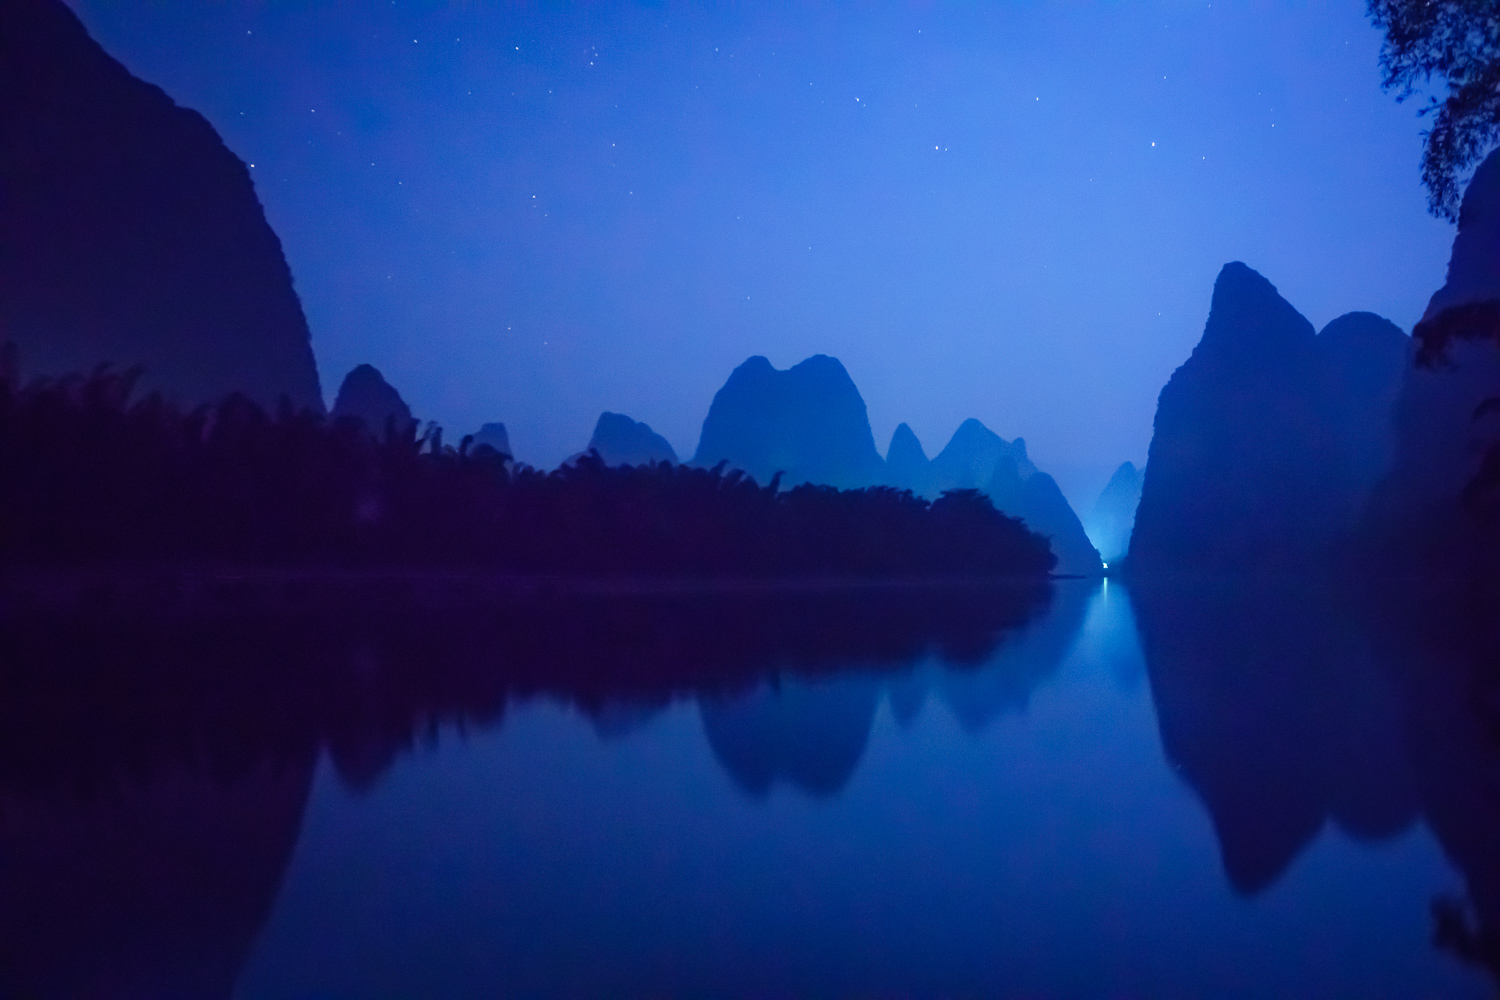 Li River and Karst Mountains in Guilin, China - Beginner's Guide to Natural Light in Landscape Photography